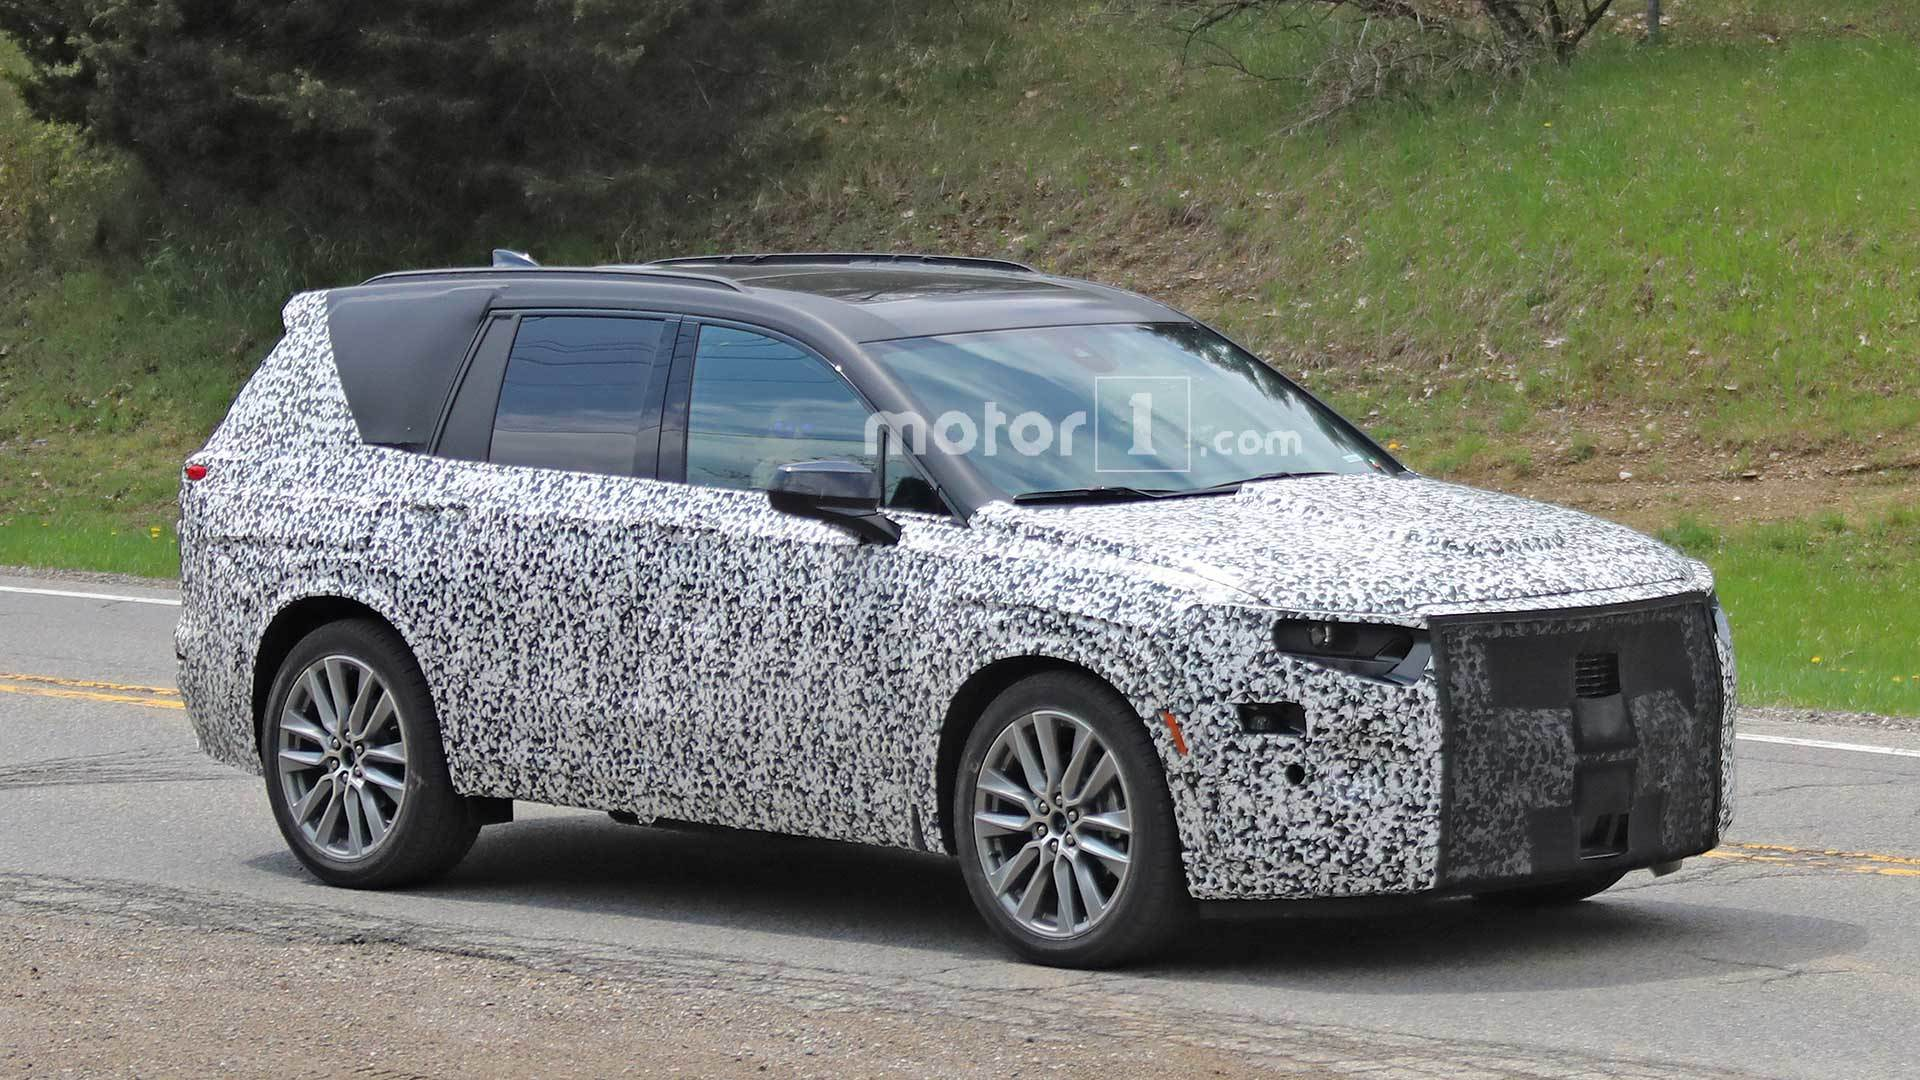 2020 Cadillac Xt6 Confirmed For Detroit